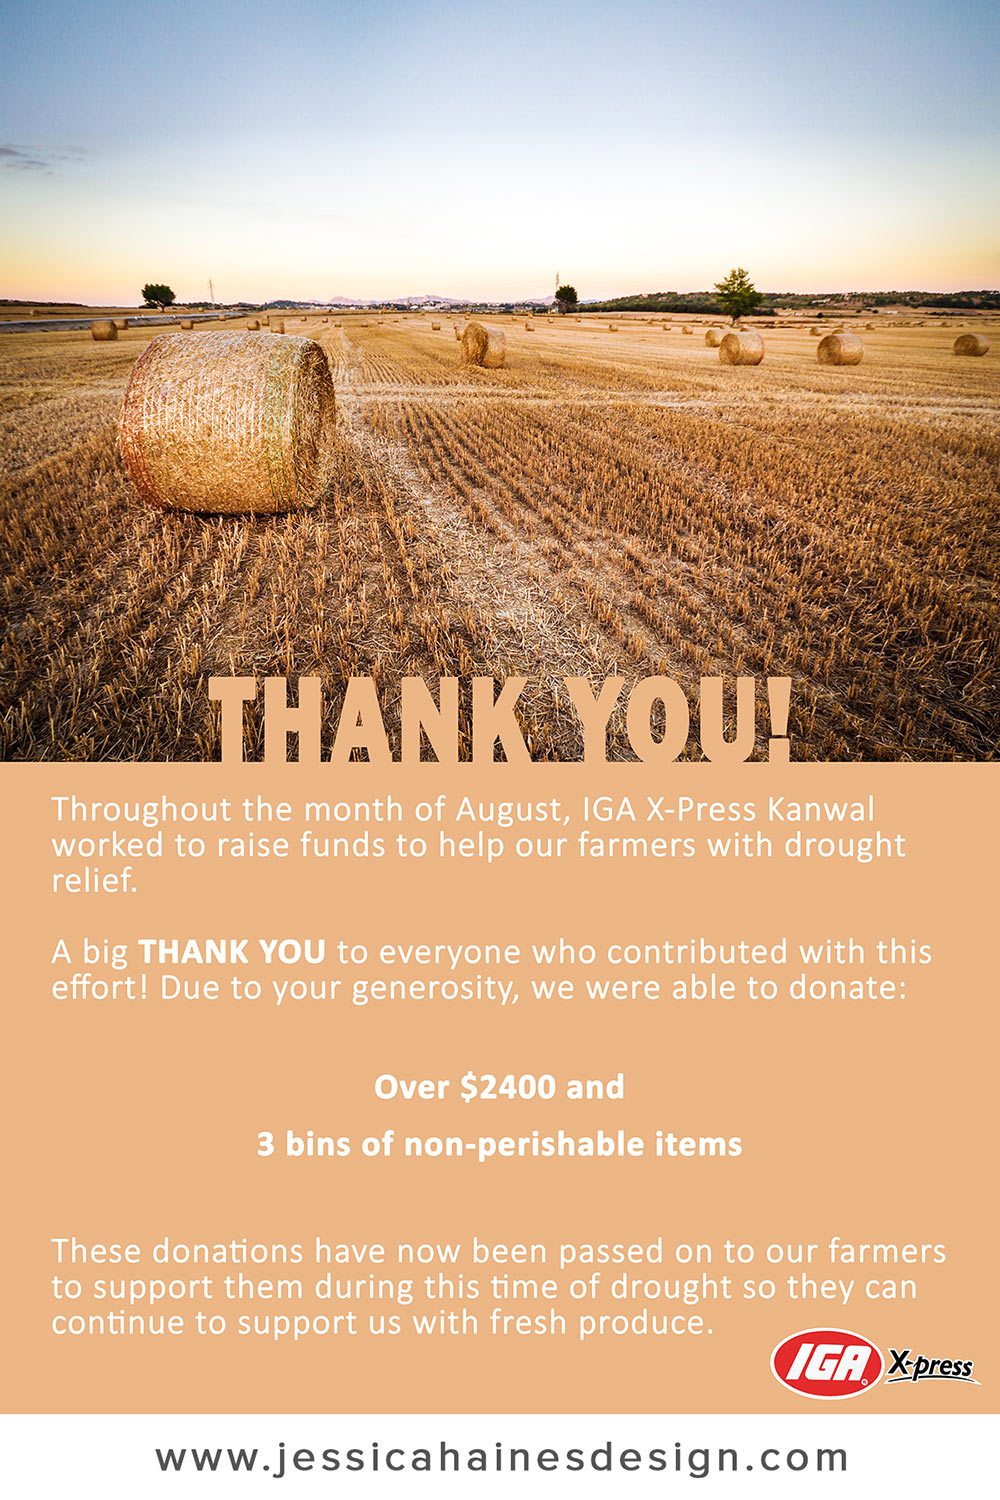 IGA XPress Drought Relief Fundraiser Thank You Poster